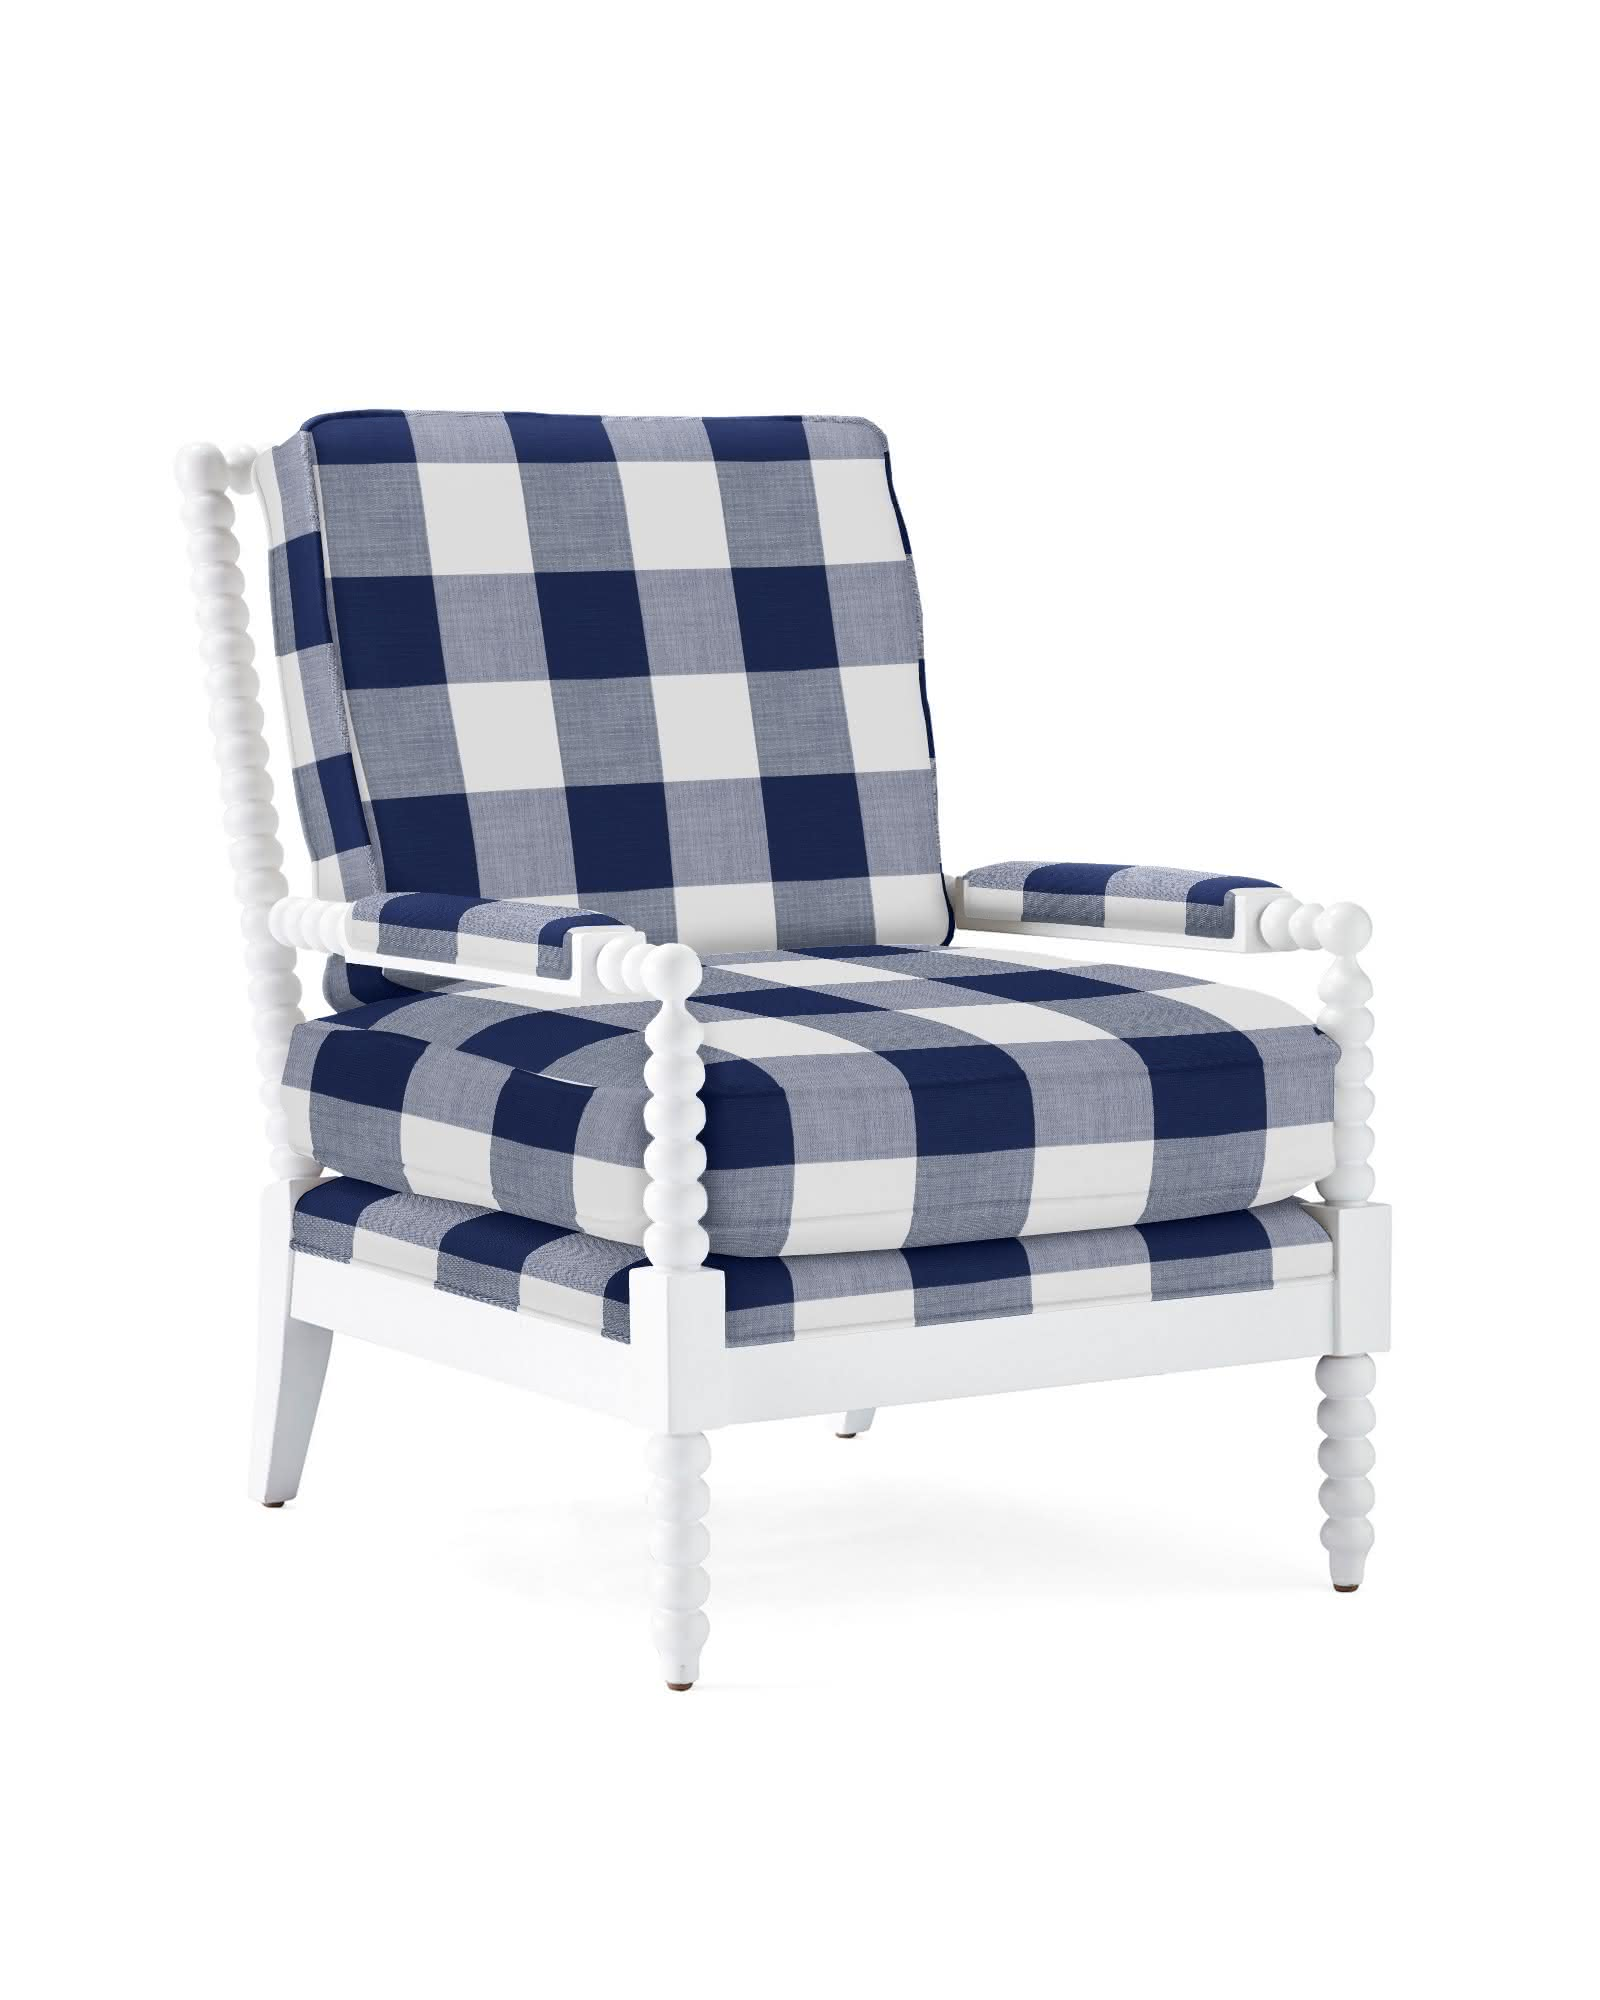 Beckett Chair - Perennials® Navy Gingham,